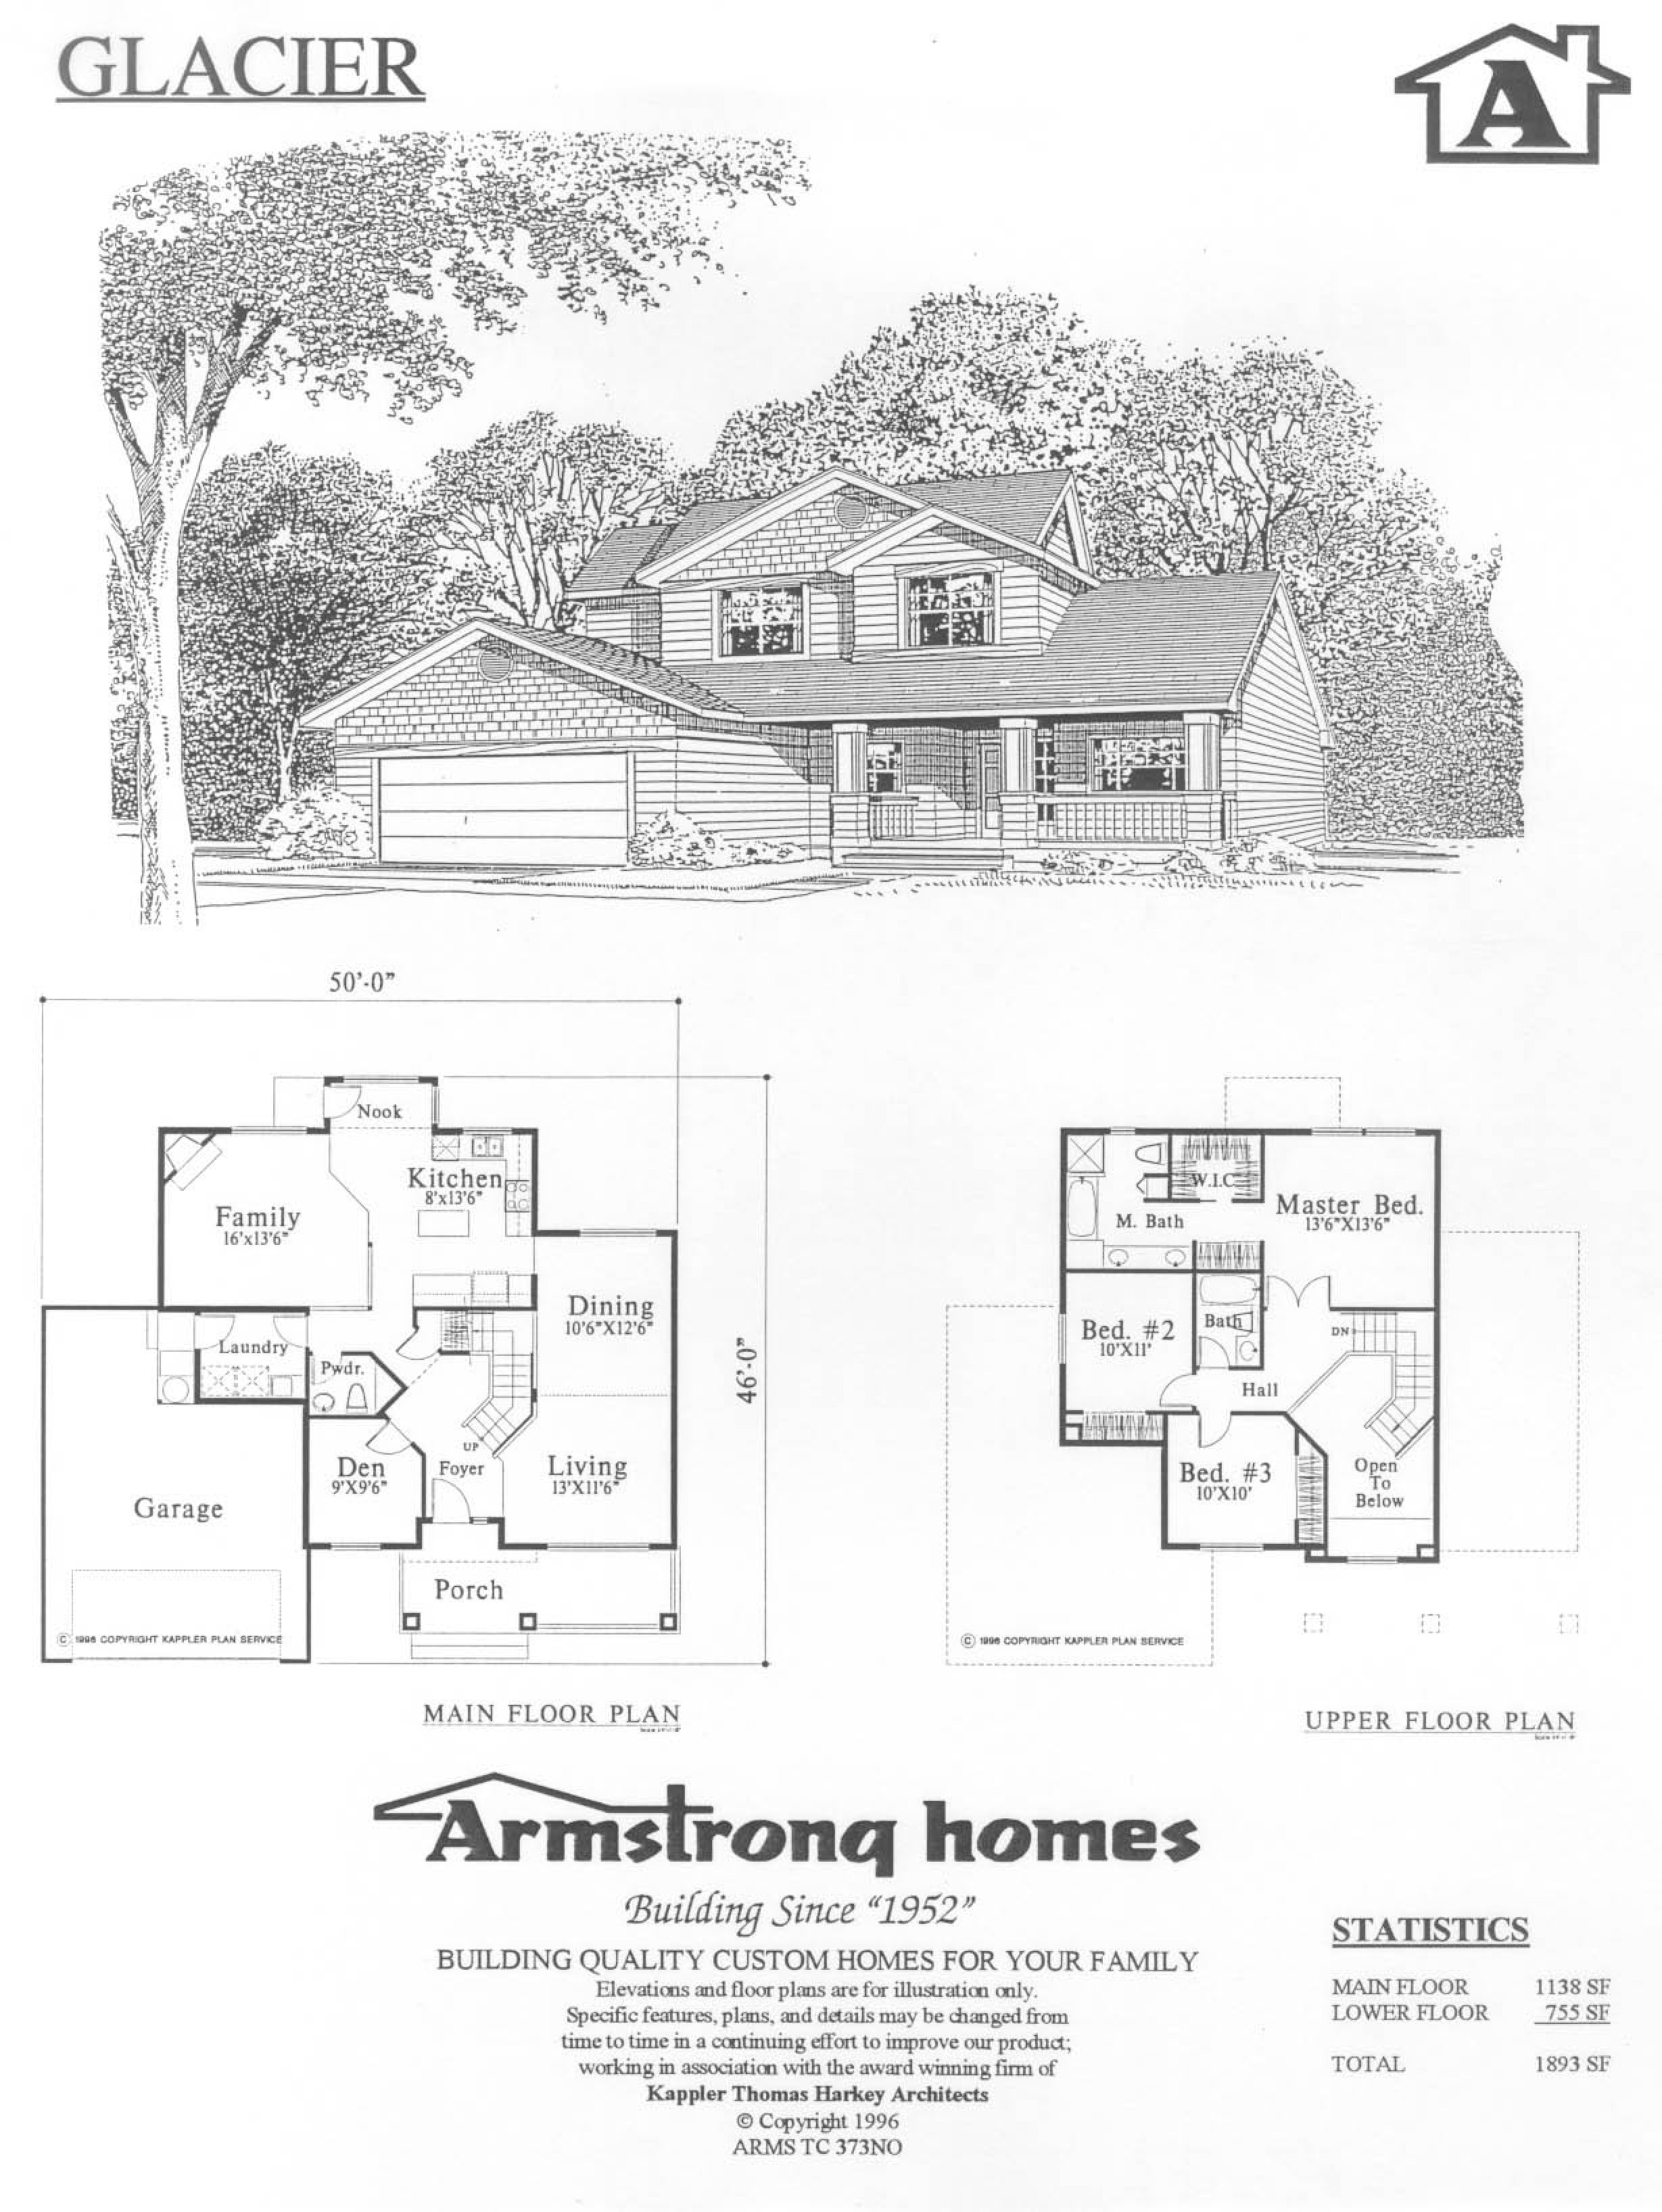 Armstrong homes ocala floor plans avie home for 221 armstrong floor plans